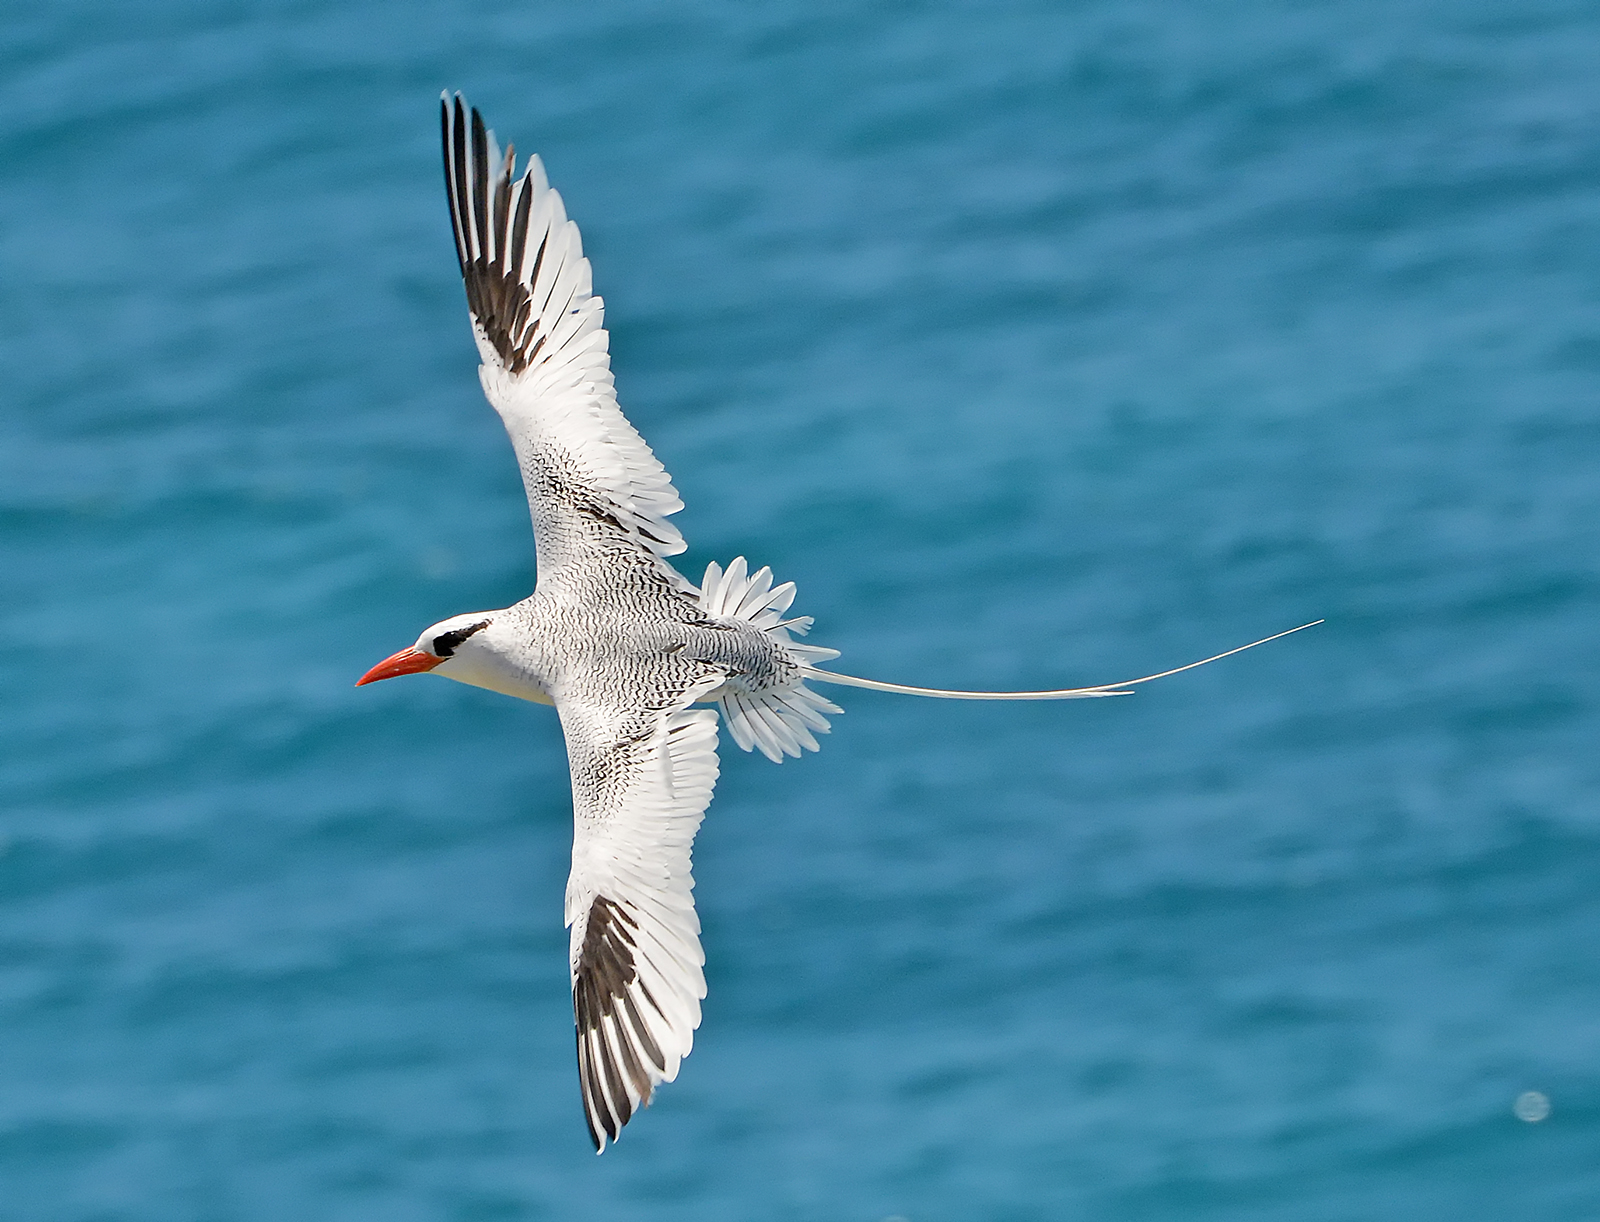 Red-billed Tropicbird (Phaethon aethereus), one of two species of tropicbirds found in the Caribbean. Photograph by Ted Lee Eubanks.